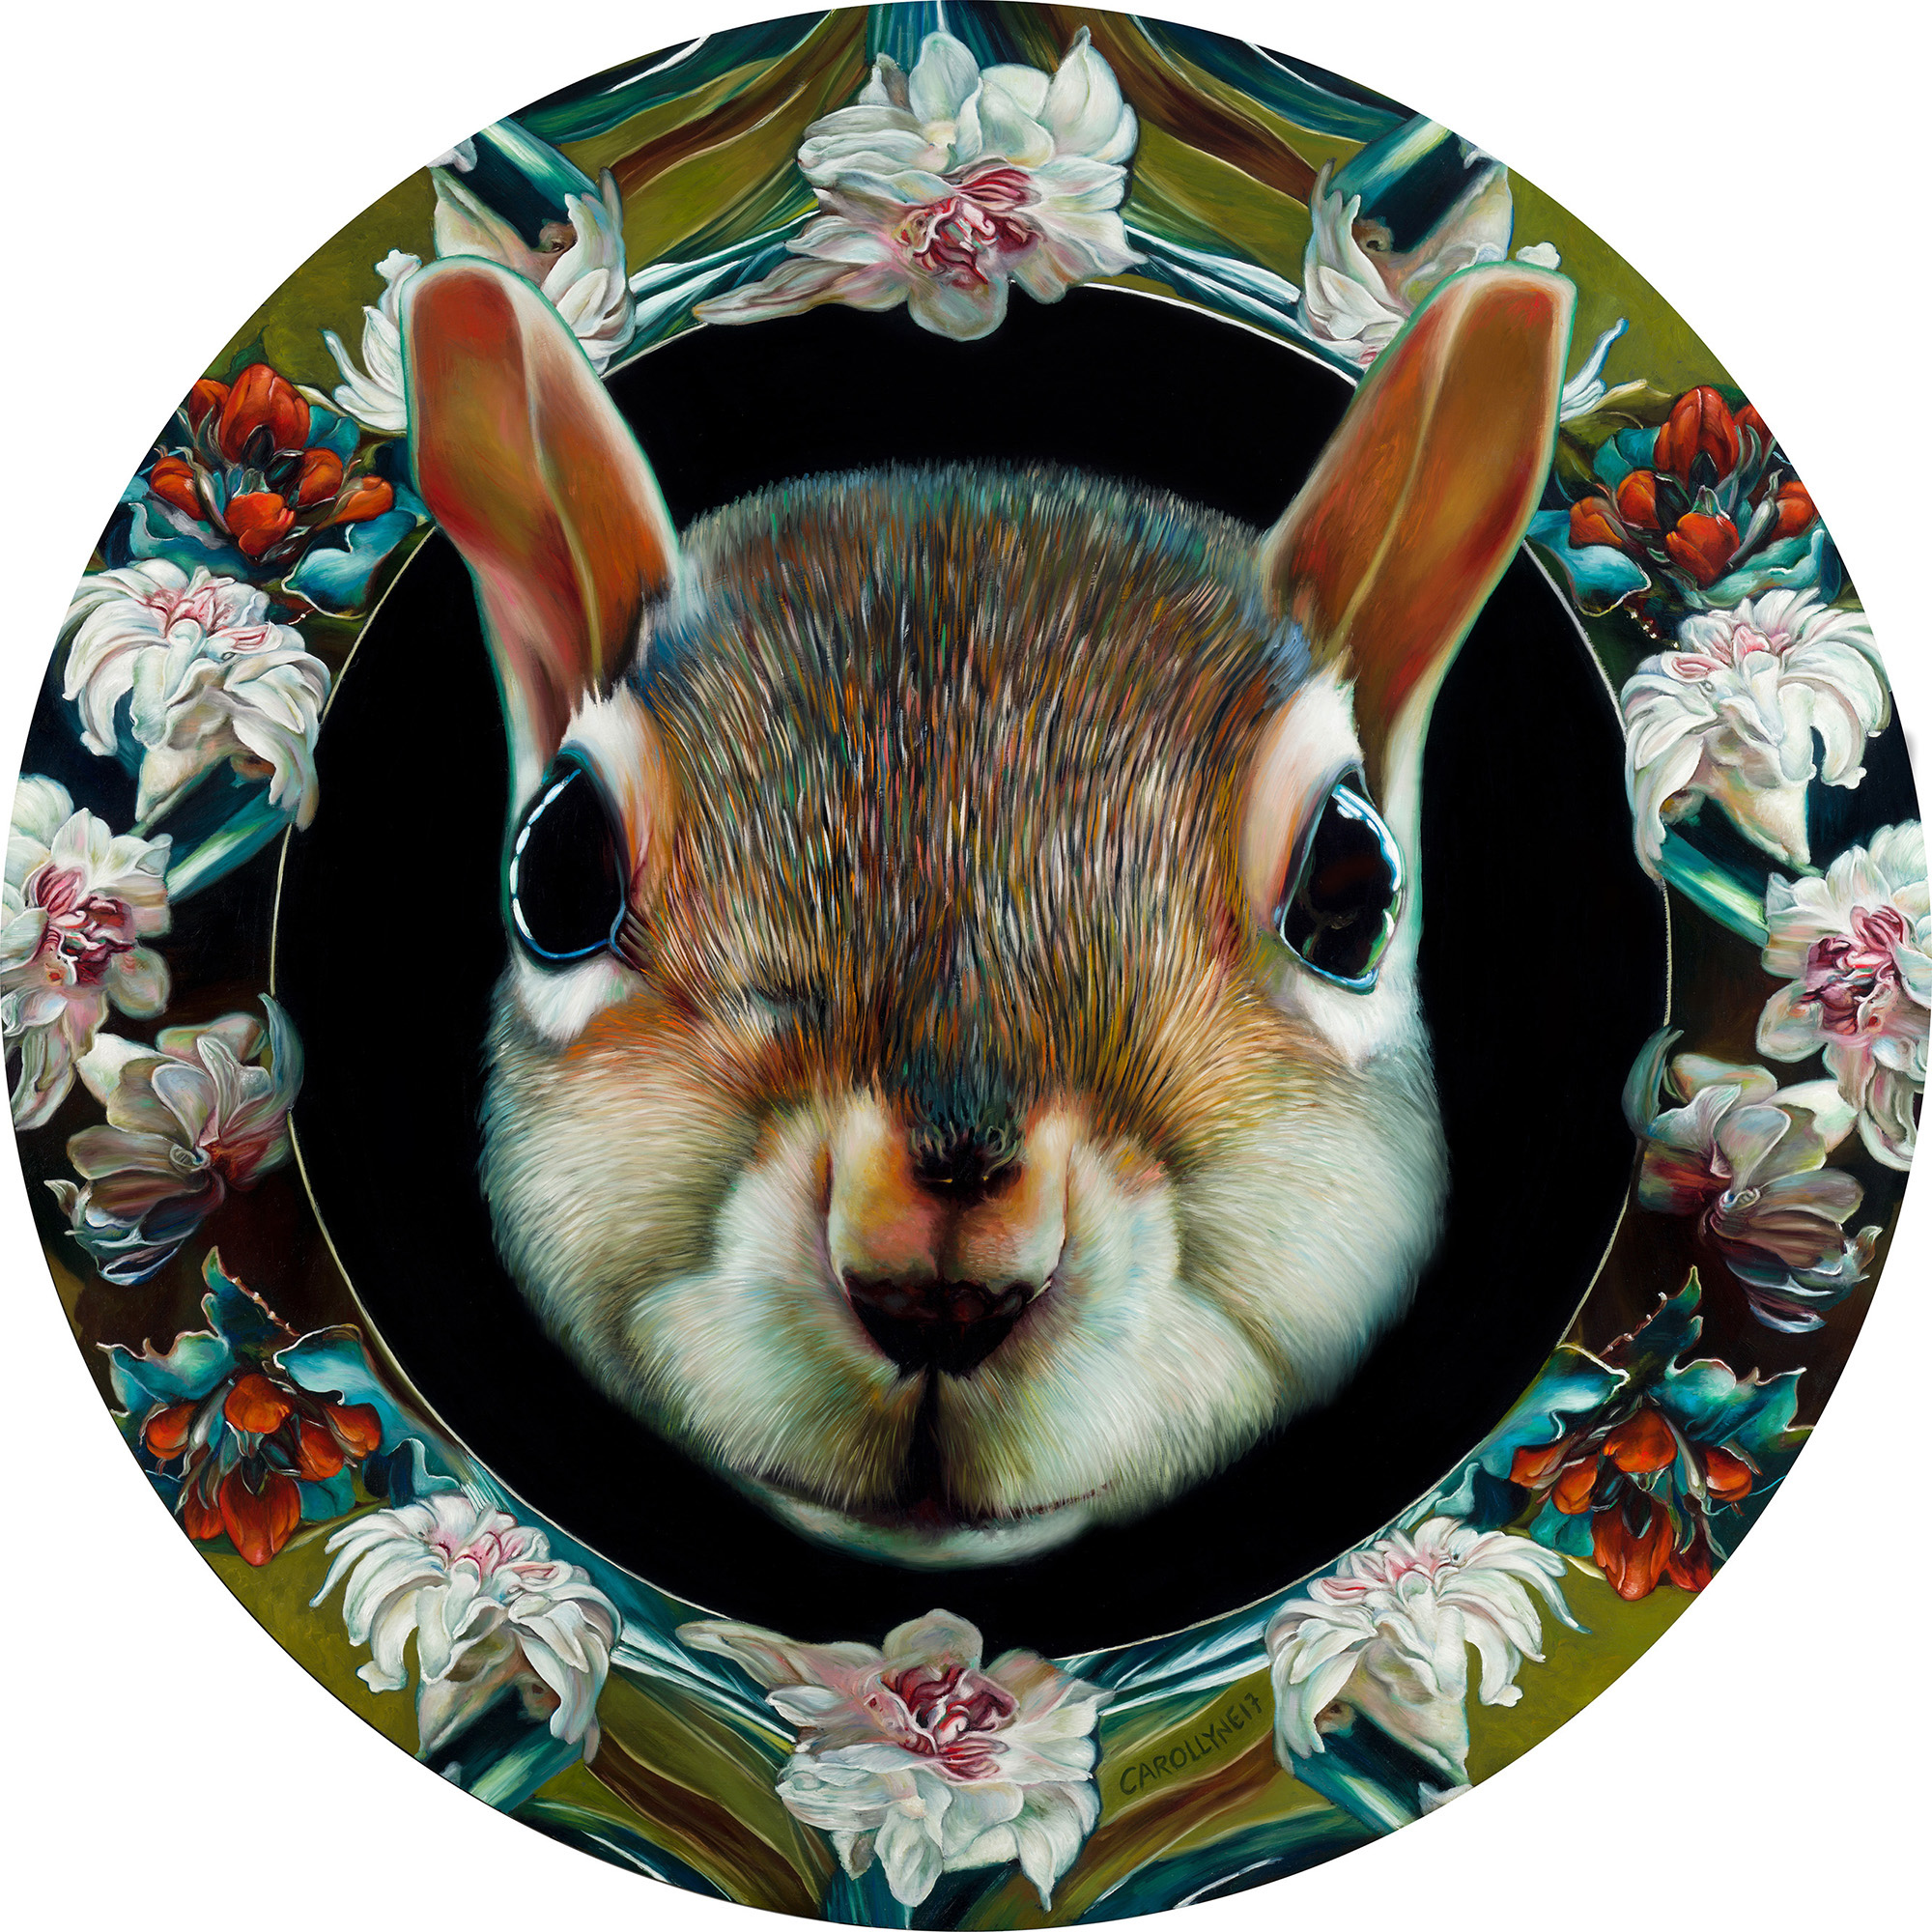 "Moon Squirrel, 36"" diameter, oil on panel, 2017."